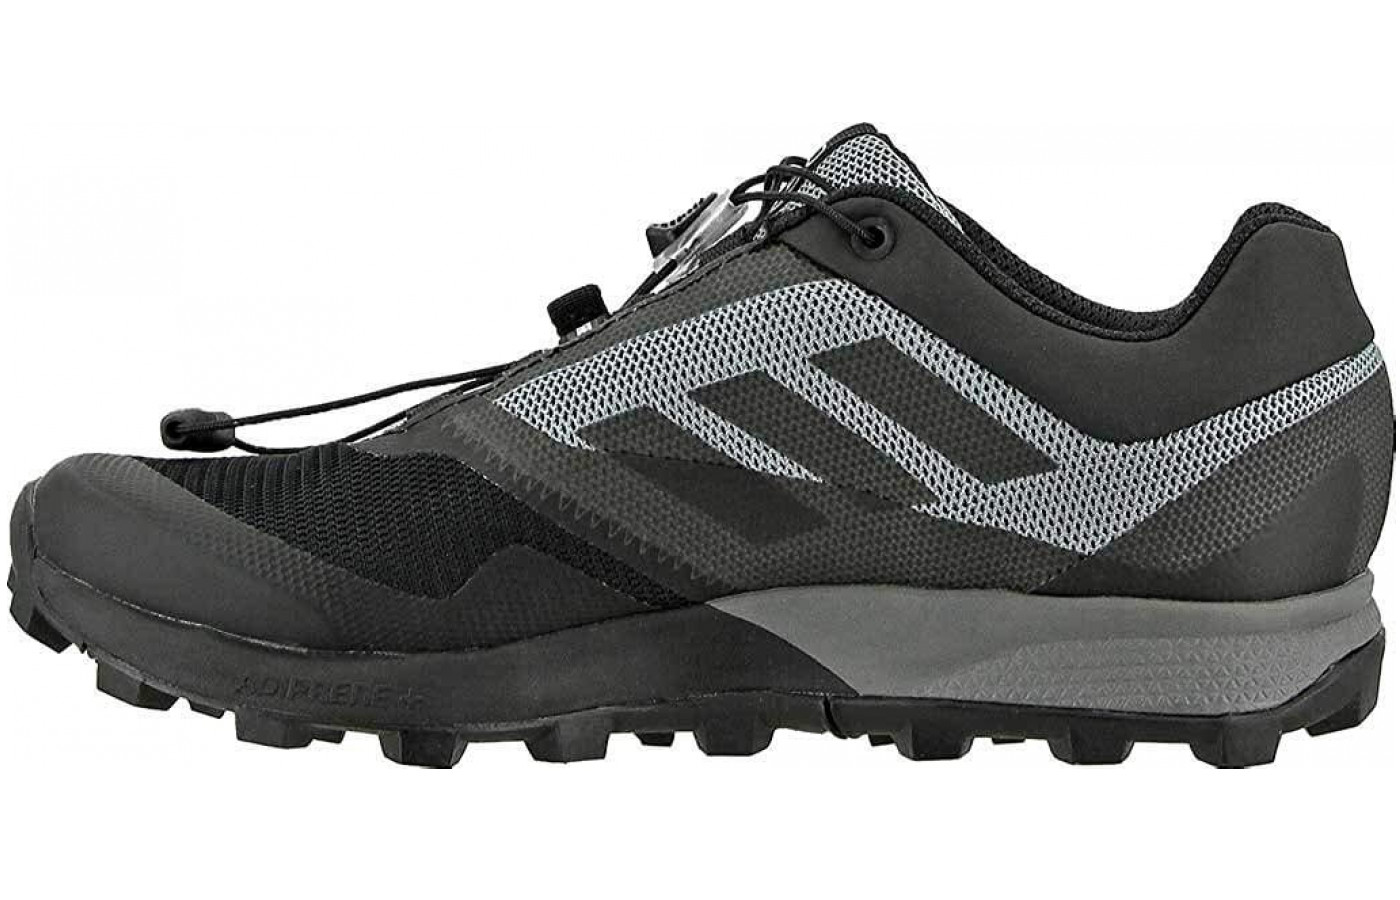 Adidas Terrex Trailmaker Fully Reviewed